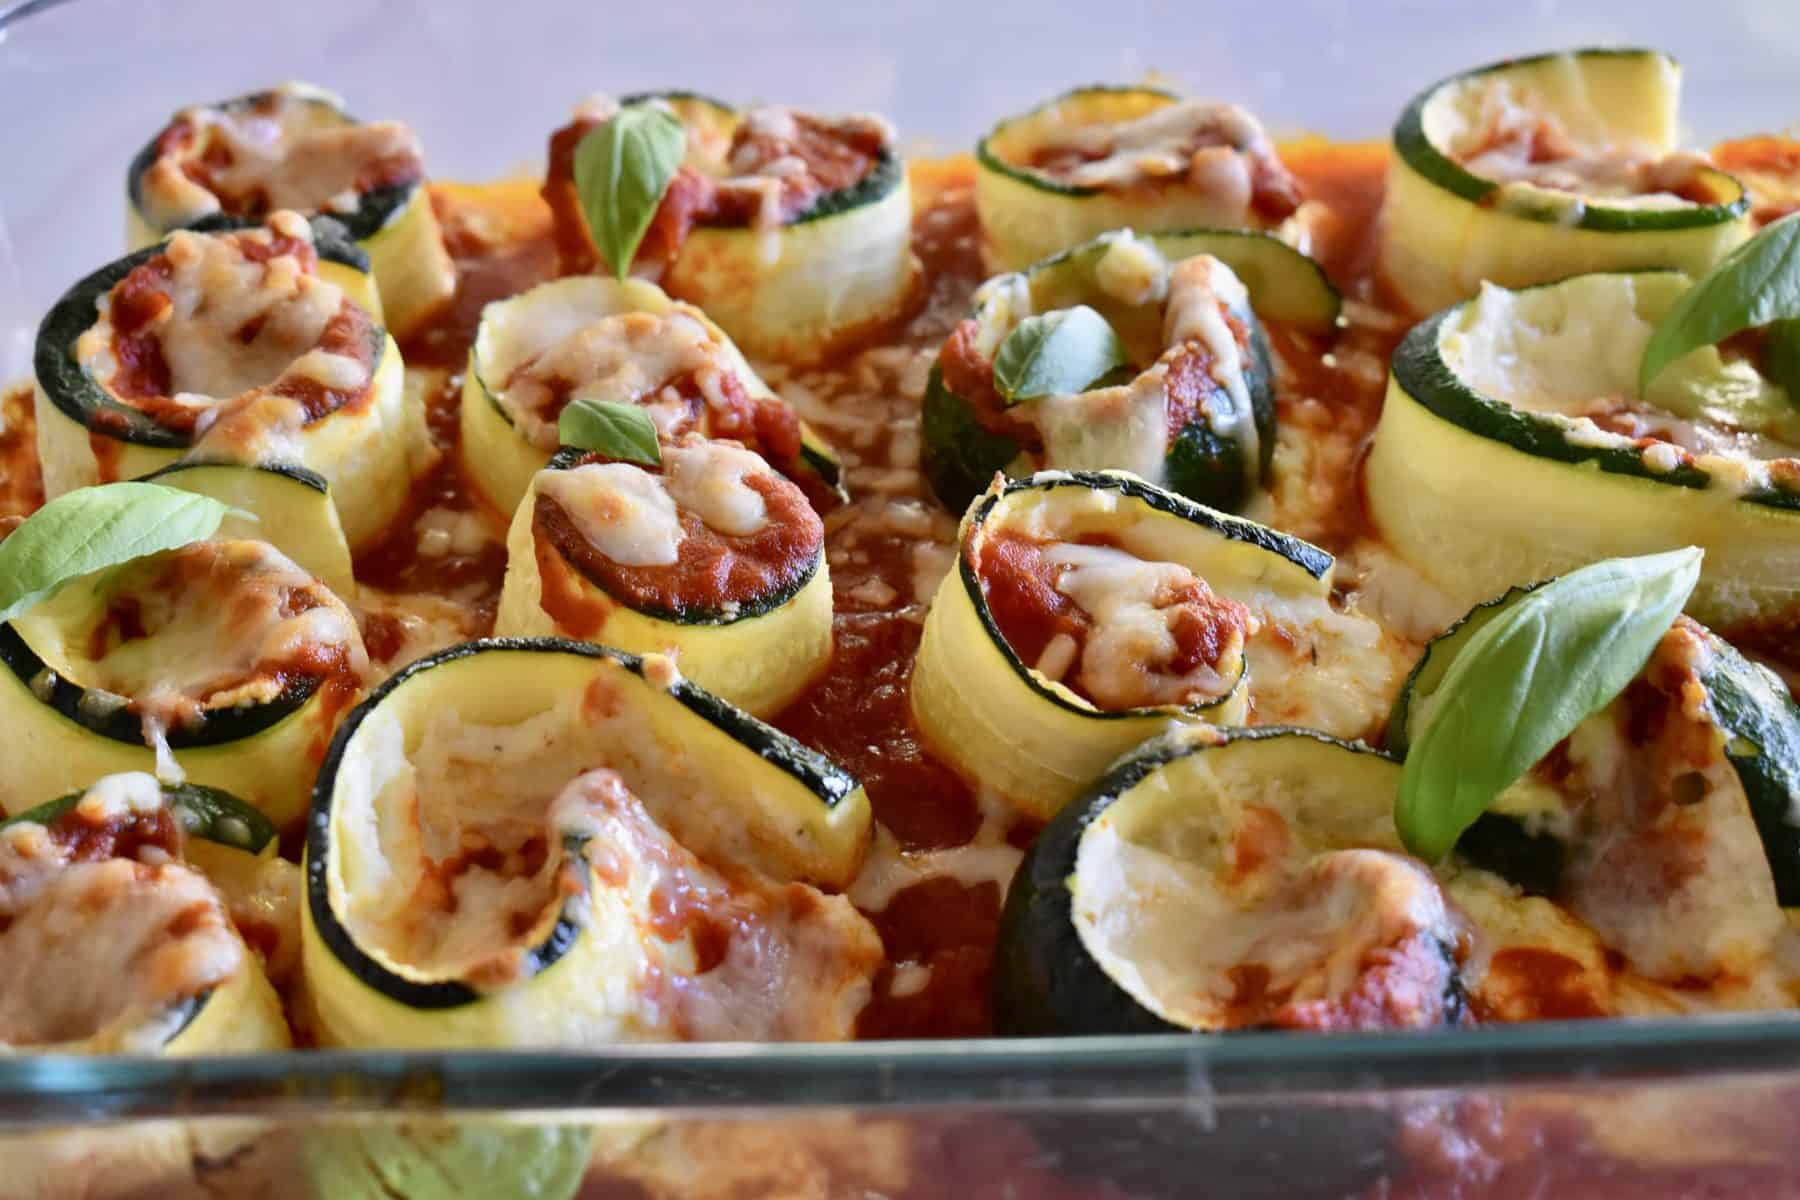 Zucchini Ricotta Roll Ups in a glass pan with basil leaves on top.